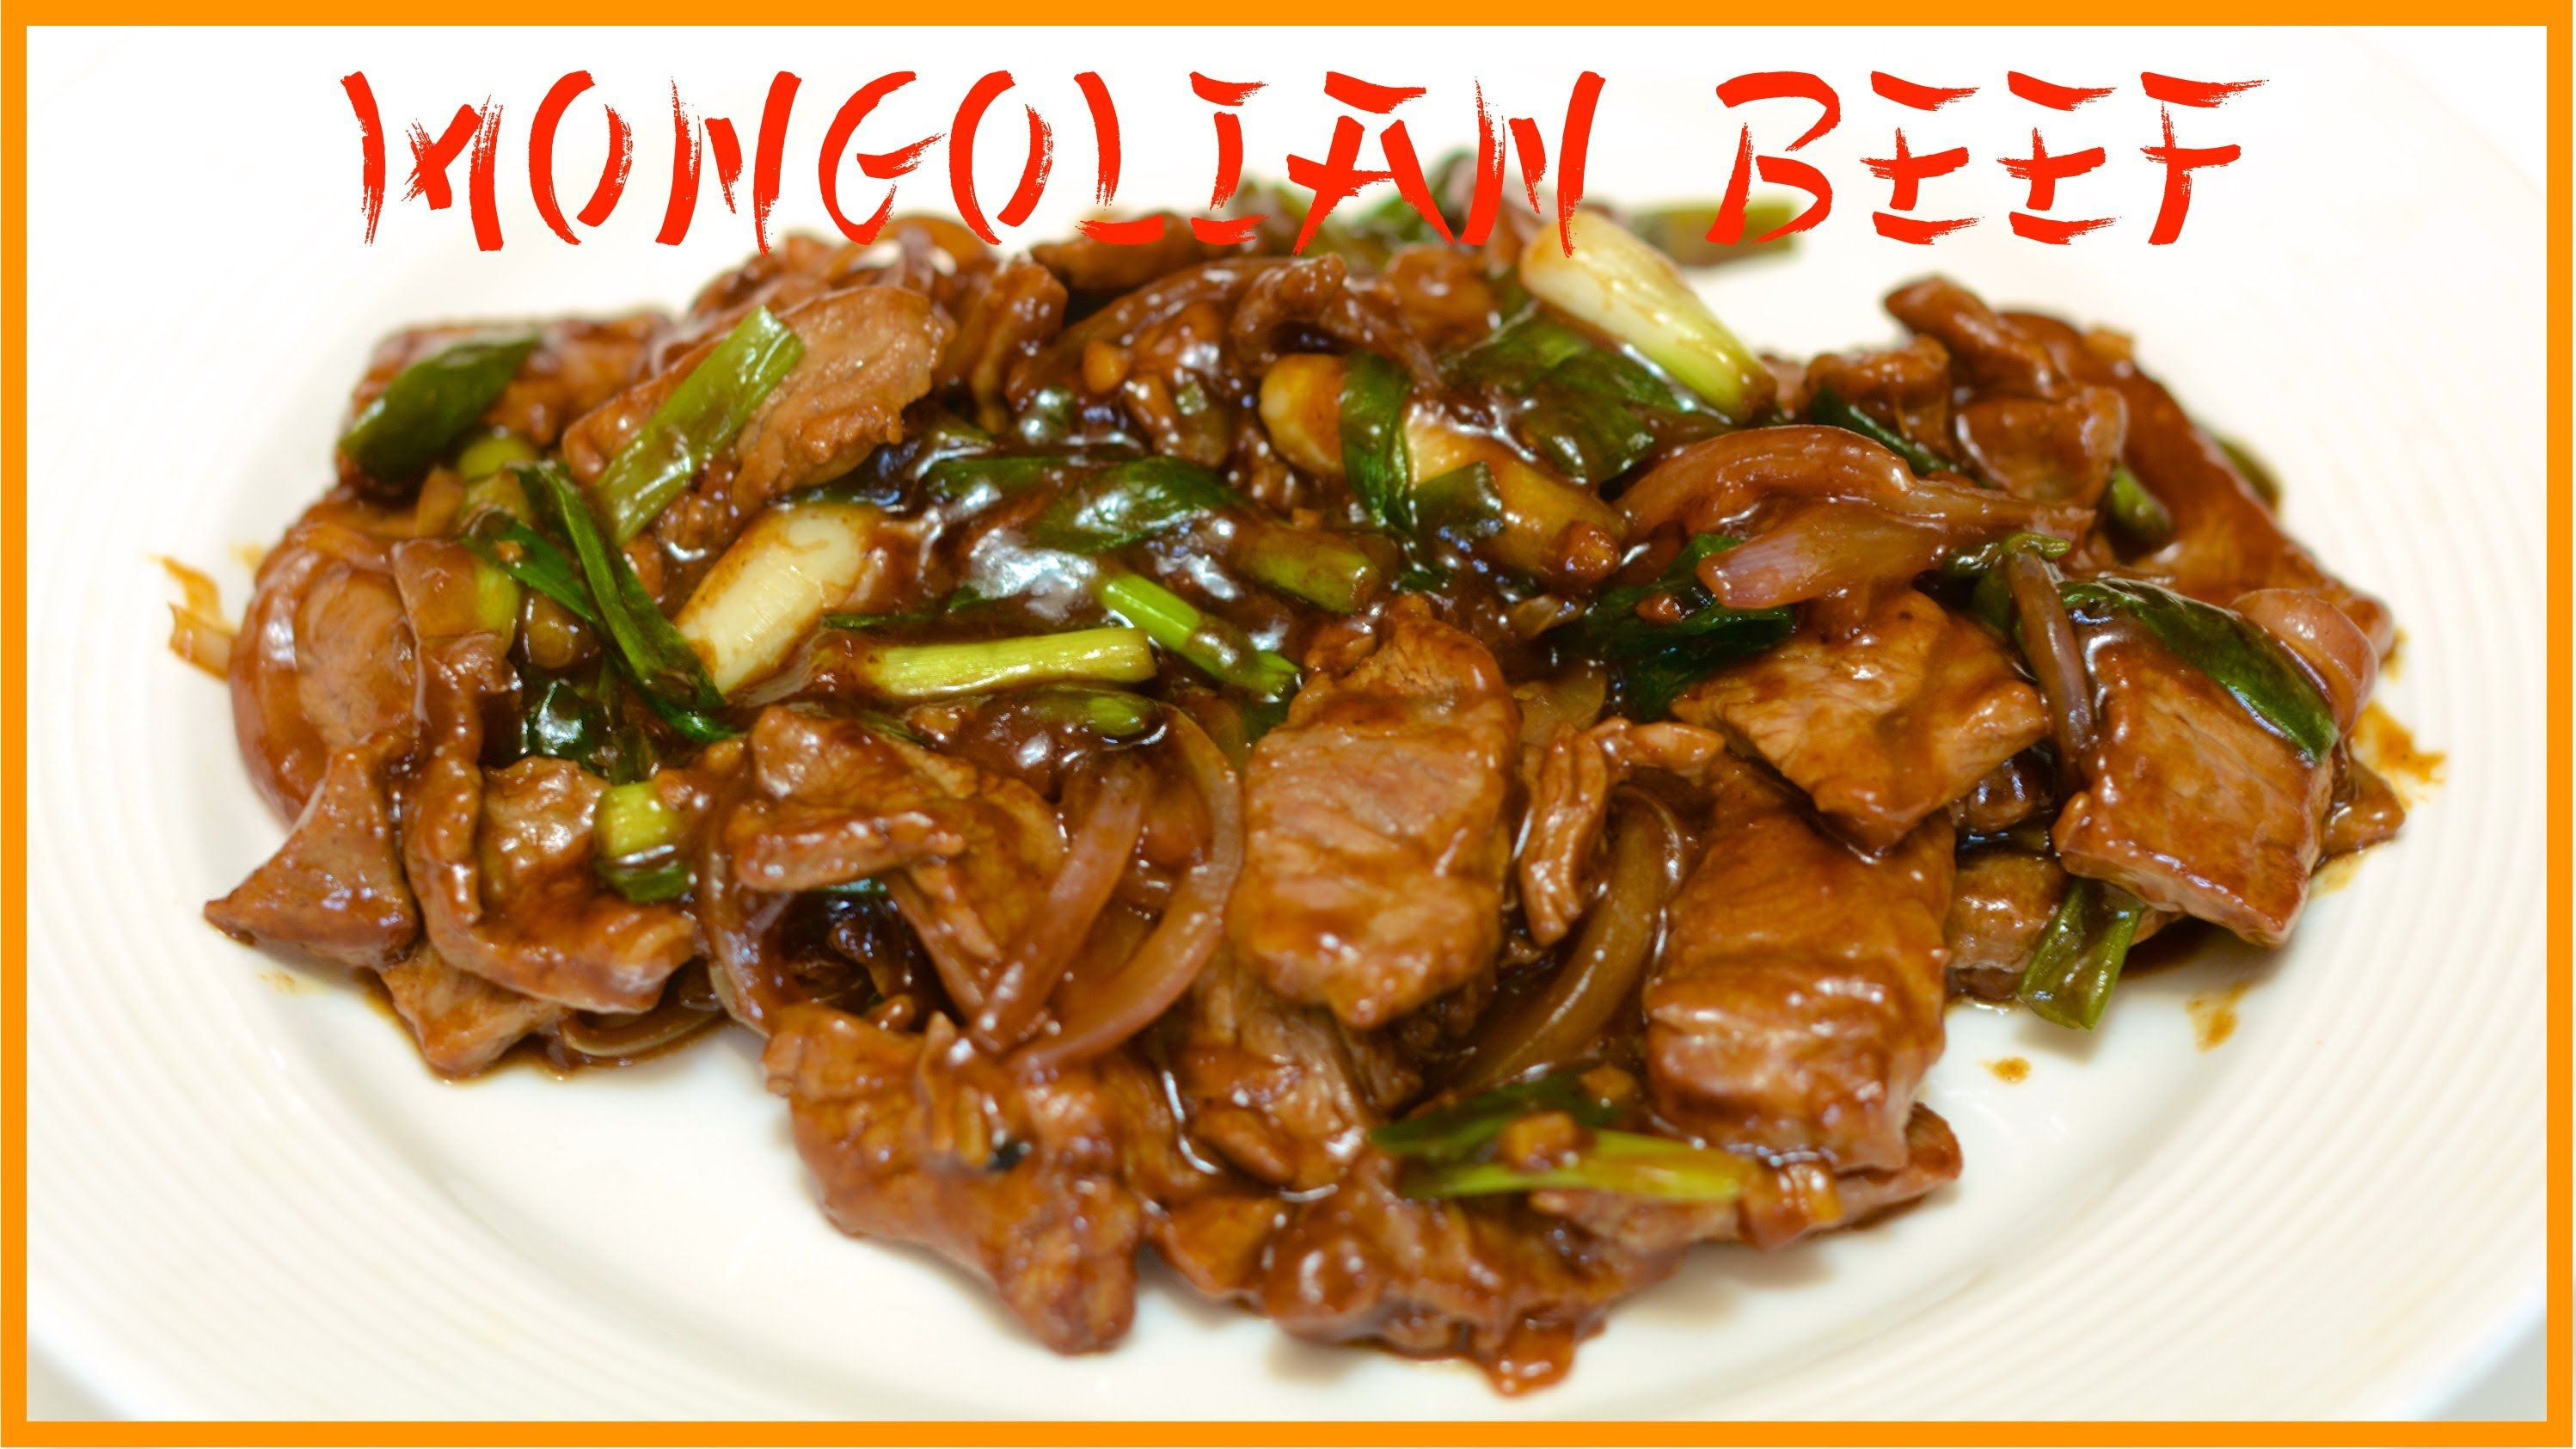 Awesome stir fried mongolian beef recipe english closed captions awesome stir fried mongolian beef recipe english closed captions forumfinder Choice Image